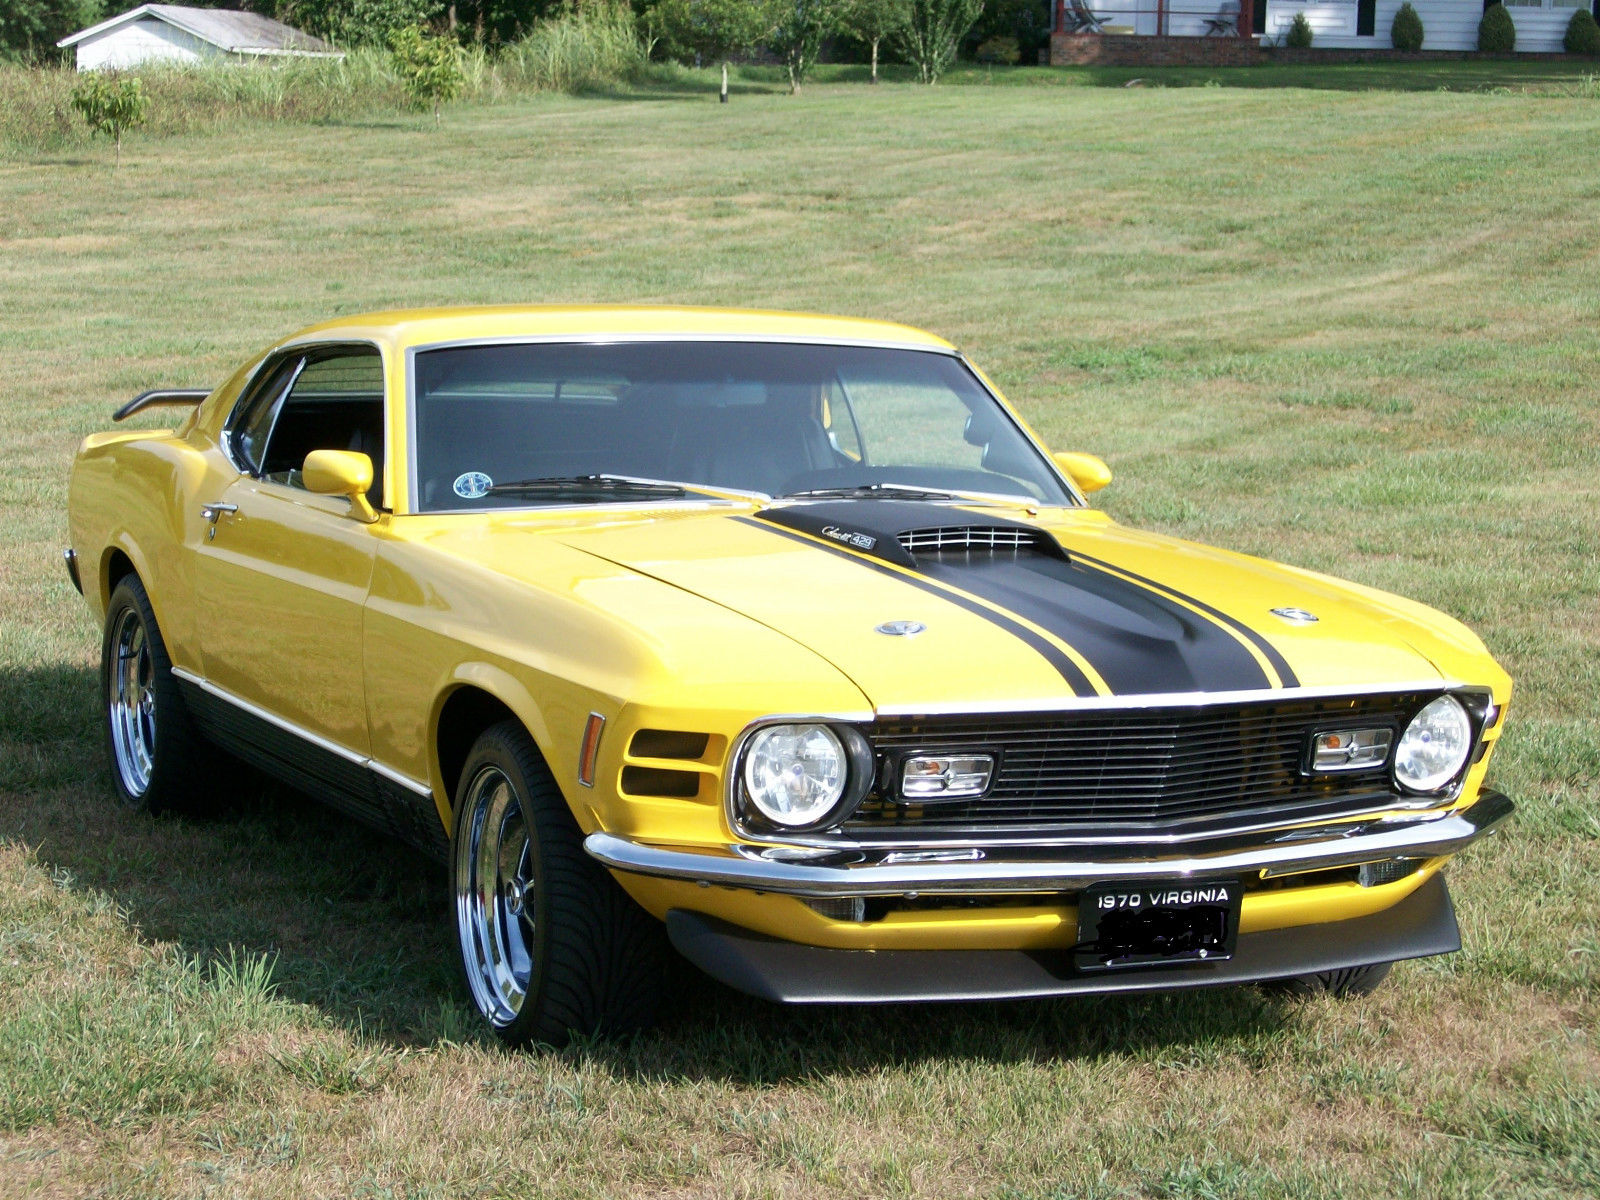 1970 ford mustang mach 1 521 stroker super cobra jet. Black Bedroom Furniture Sets. Home Design Ideas